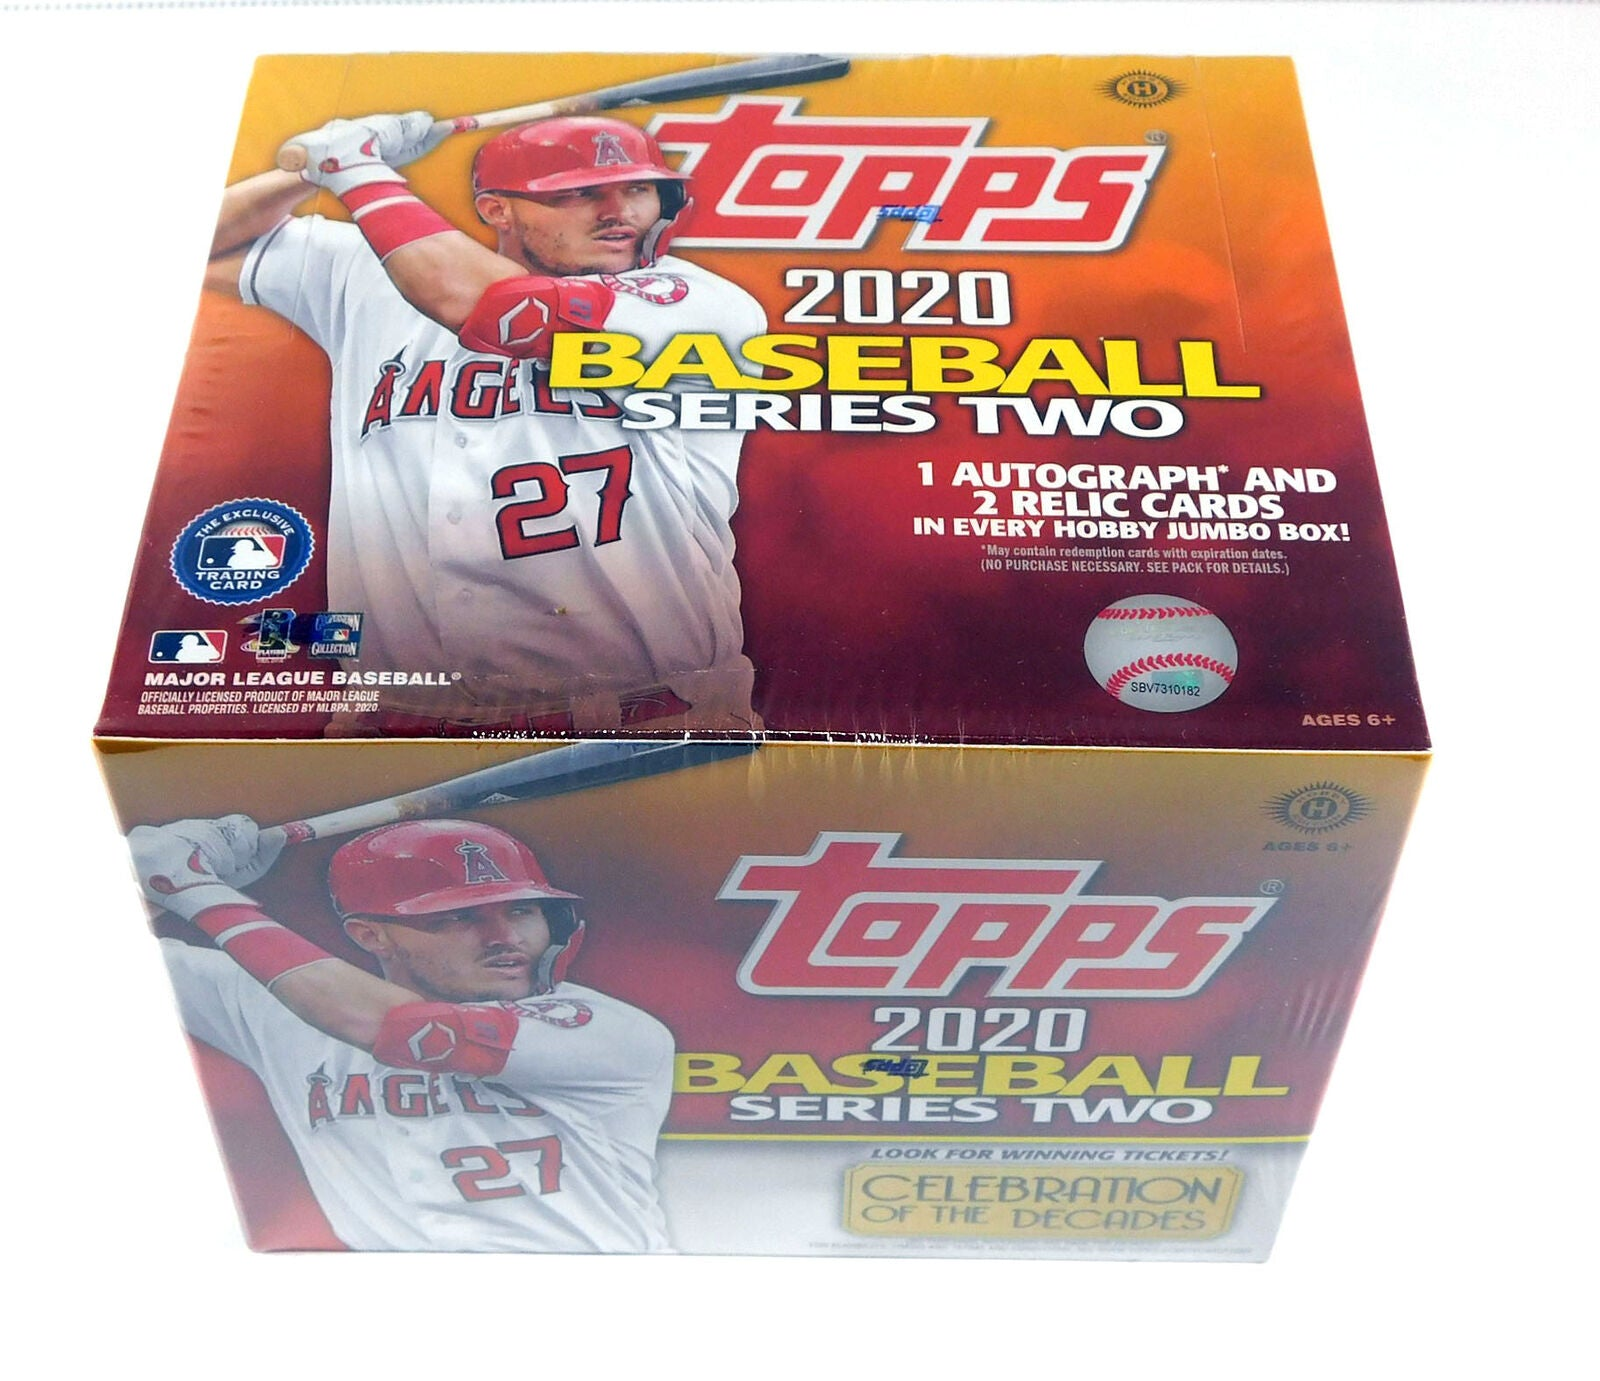 2020 Topps Baseball Series 2 Jumbo Box | HFX Games